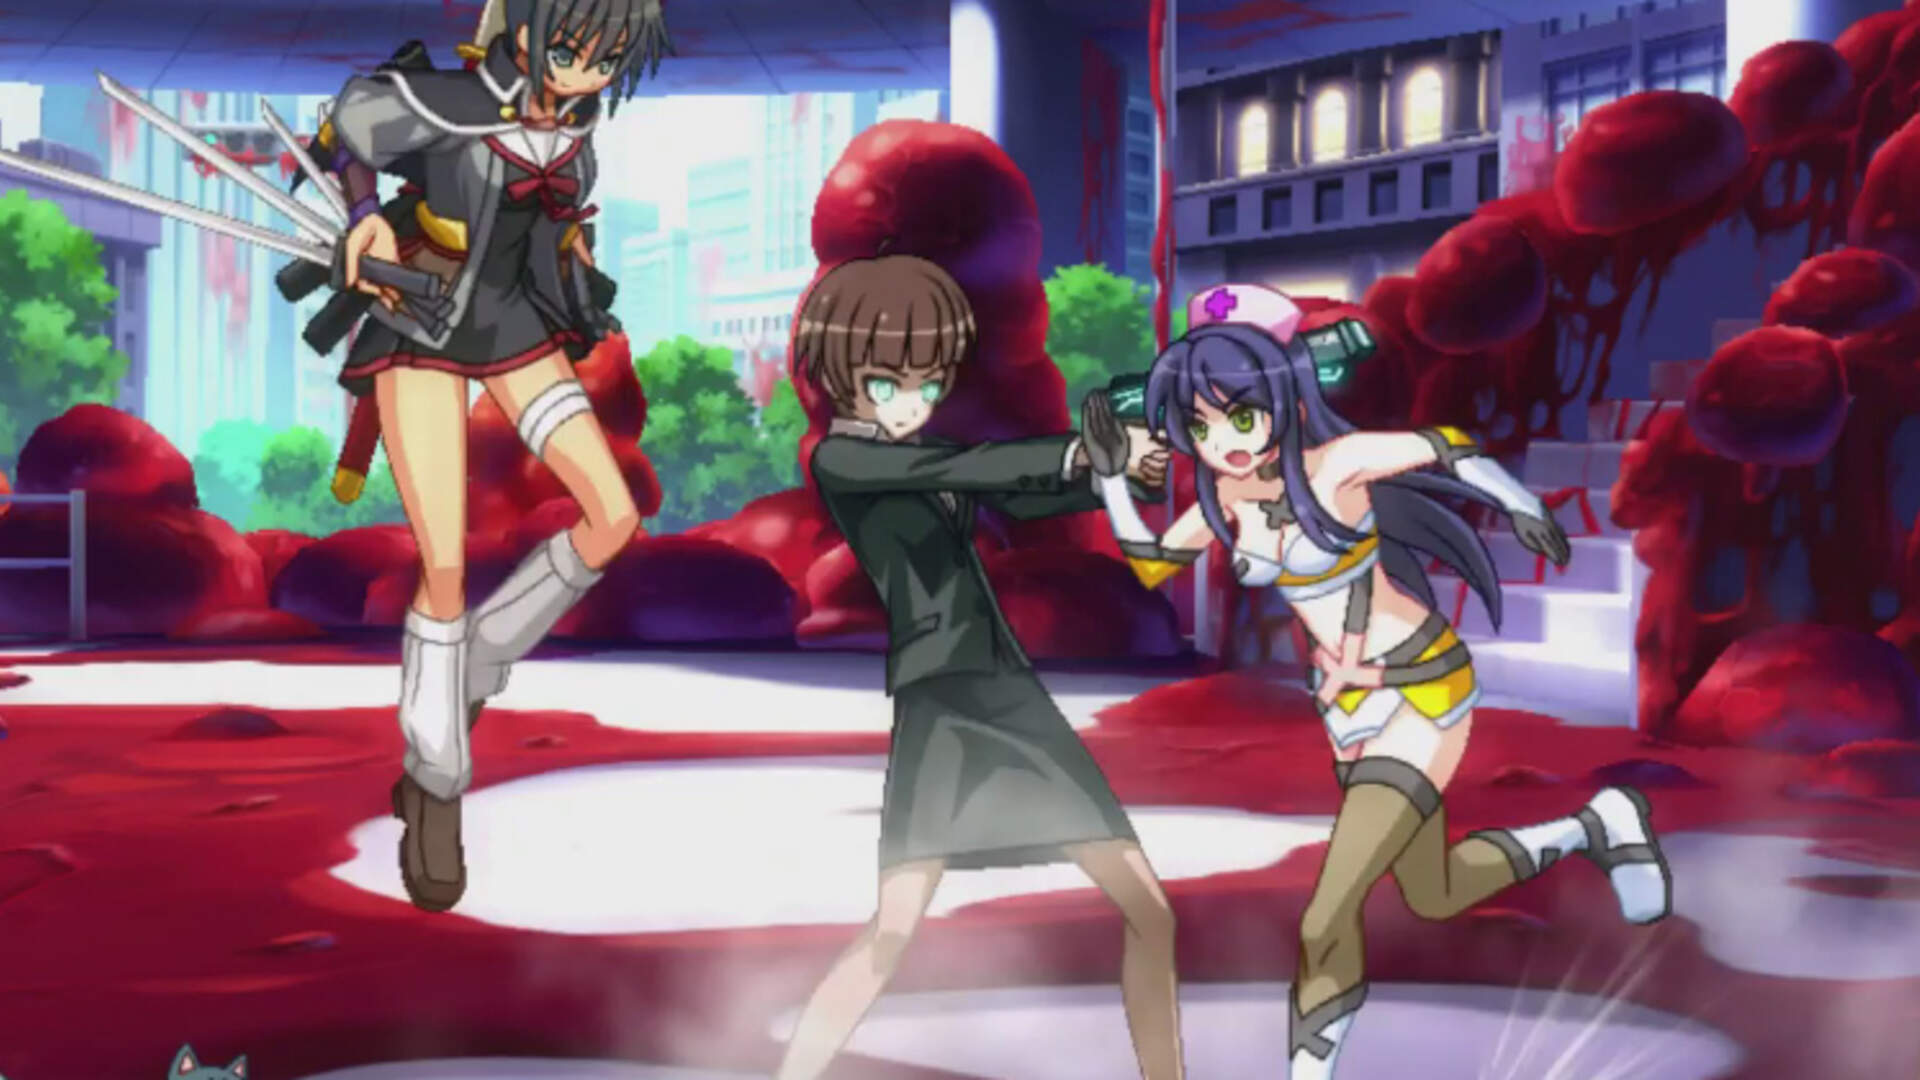 Nitroplus Blasterz -Heroines Infinite Duel- PS4 Review: The Obscure Fanservice Fighter